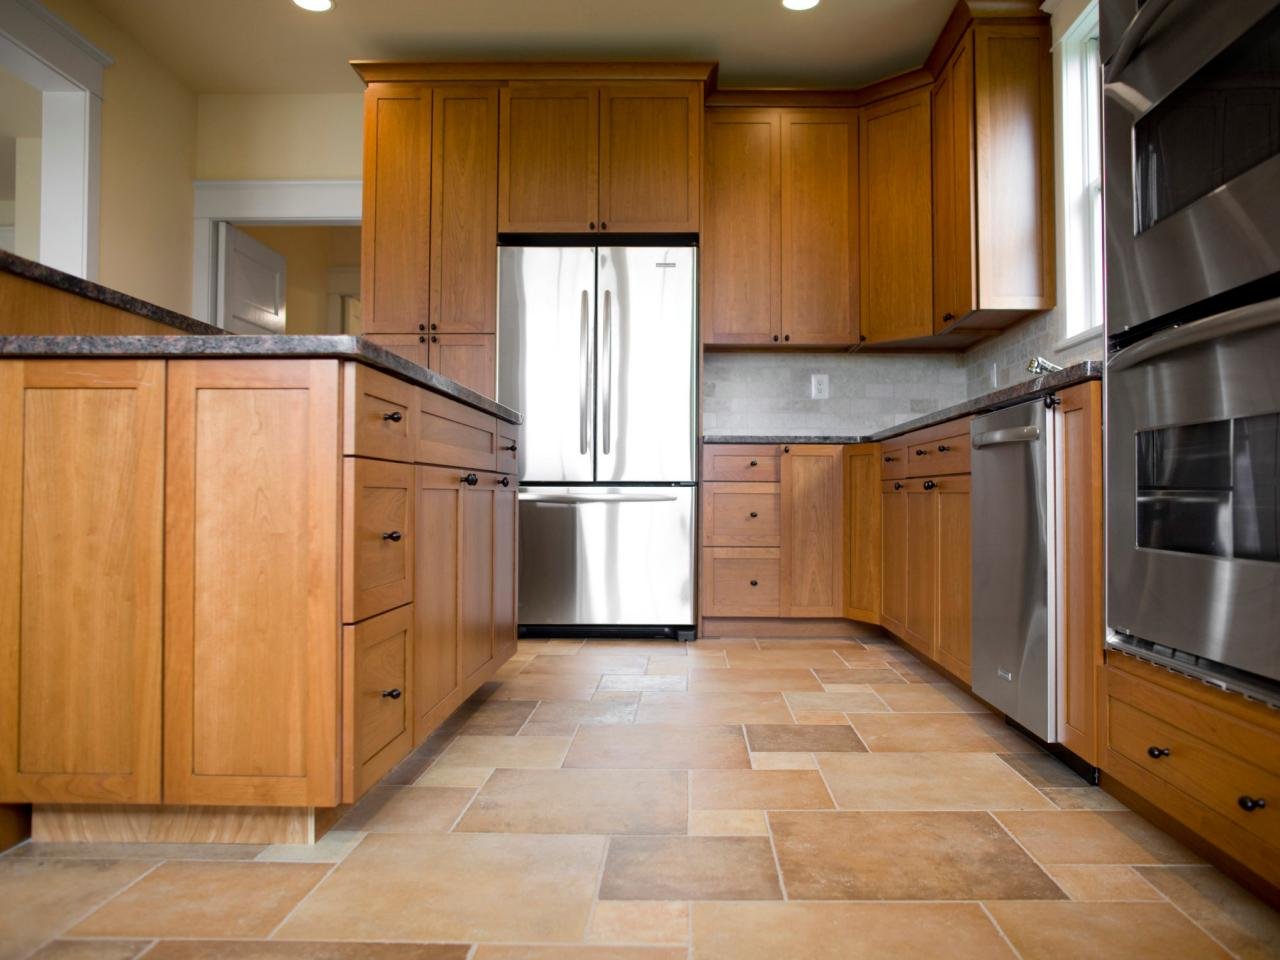 Of Kitchen Tiles Whats The Best Kitchen Floor Tile Diy